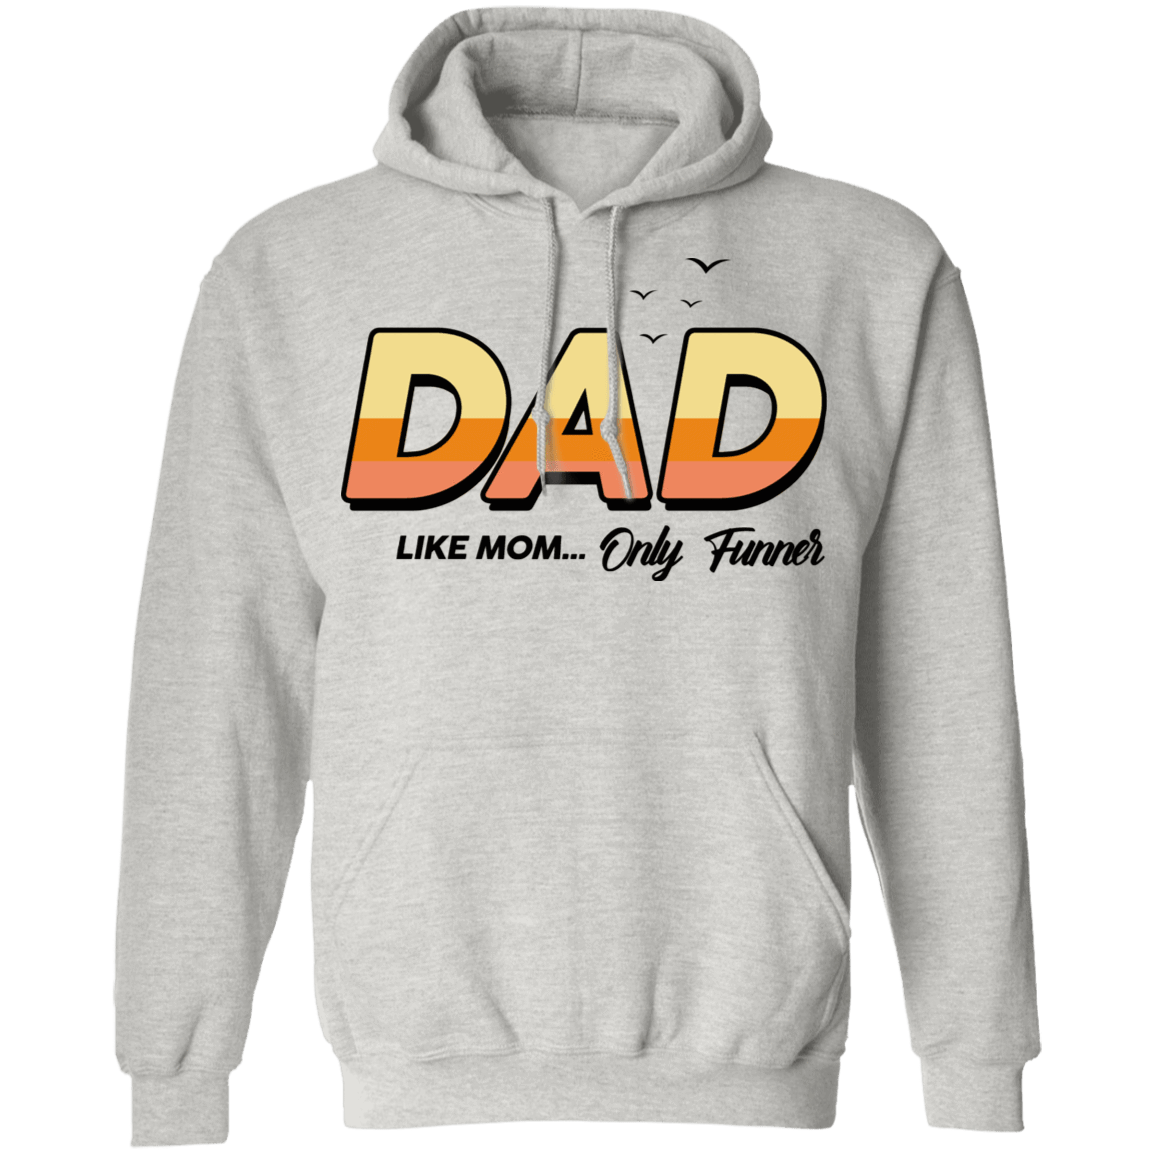 Dad Like Mom ... Only Funner T-Shirts, Hoodies, Tank 541-4748-79999097-23071 - Tee Ript